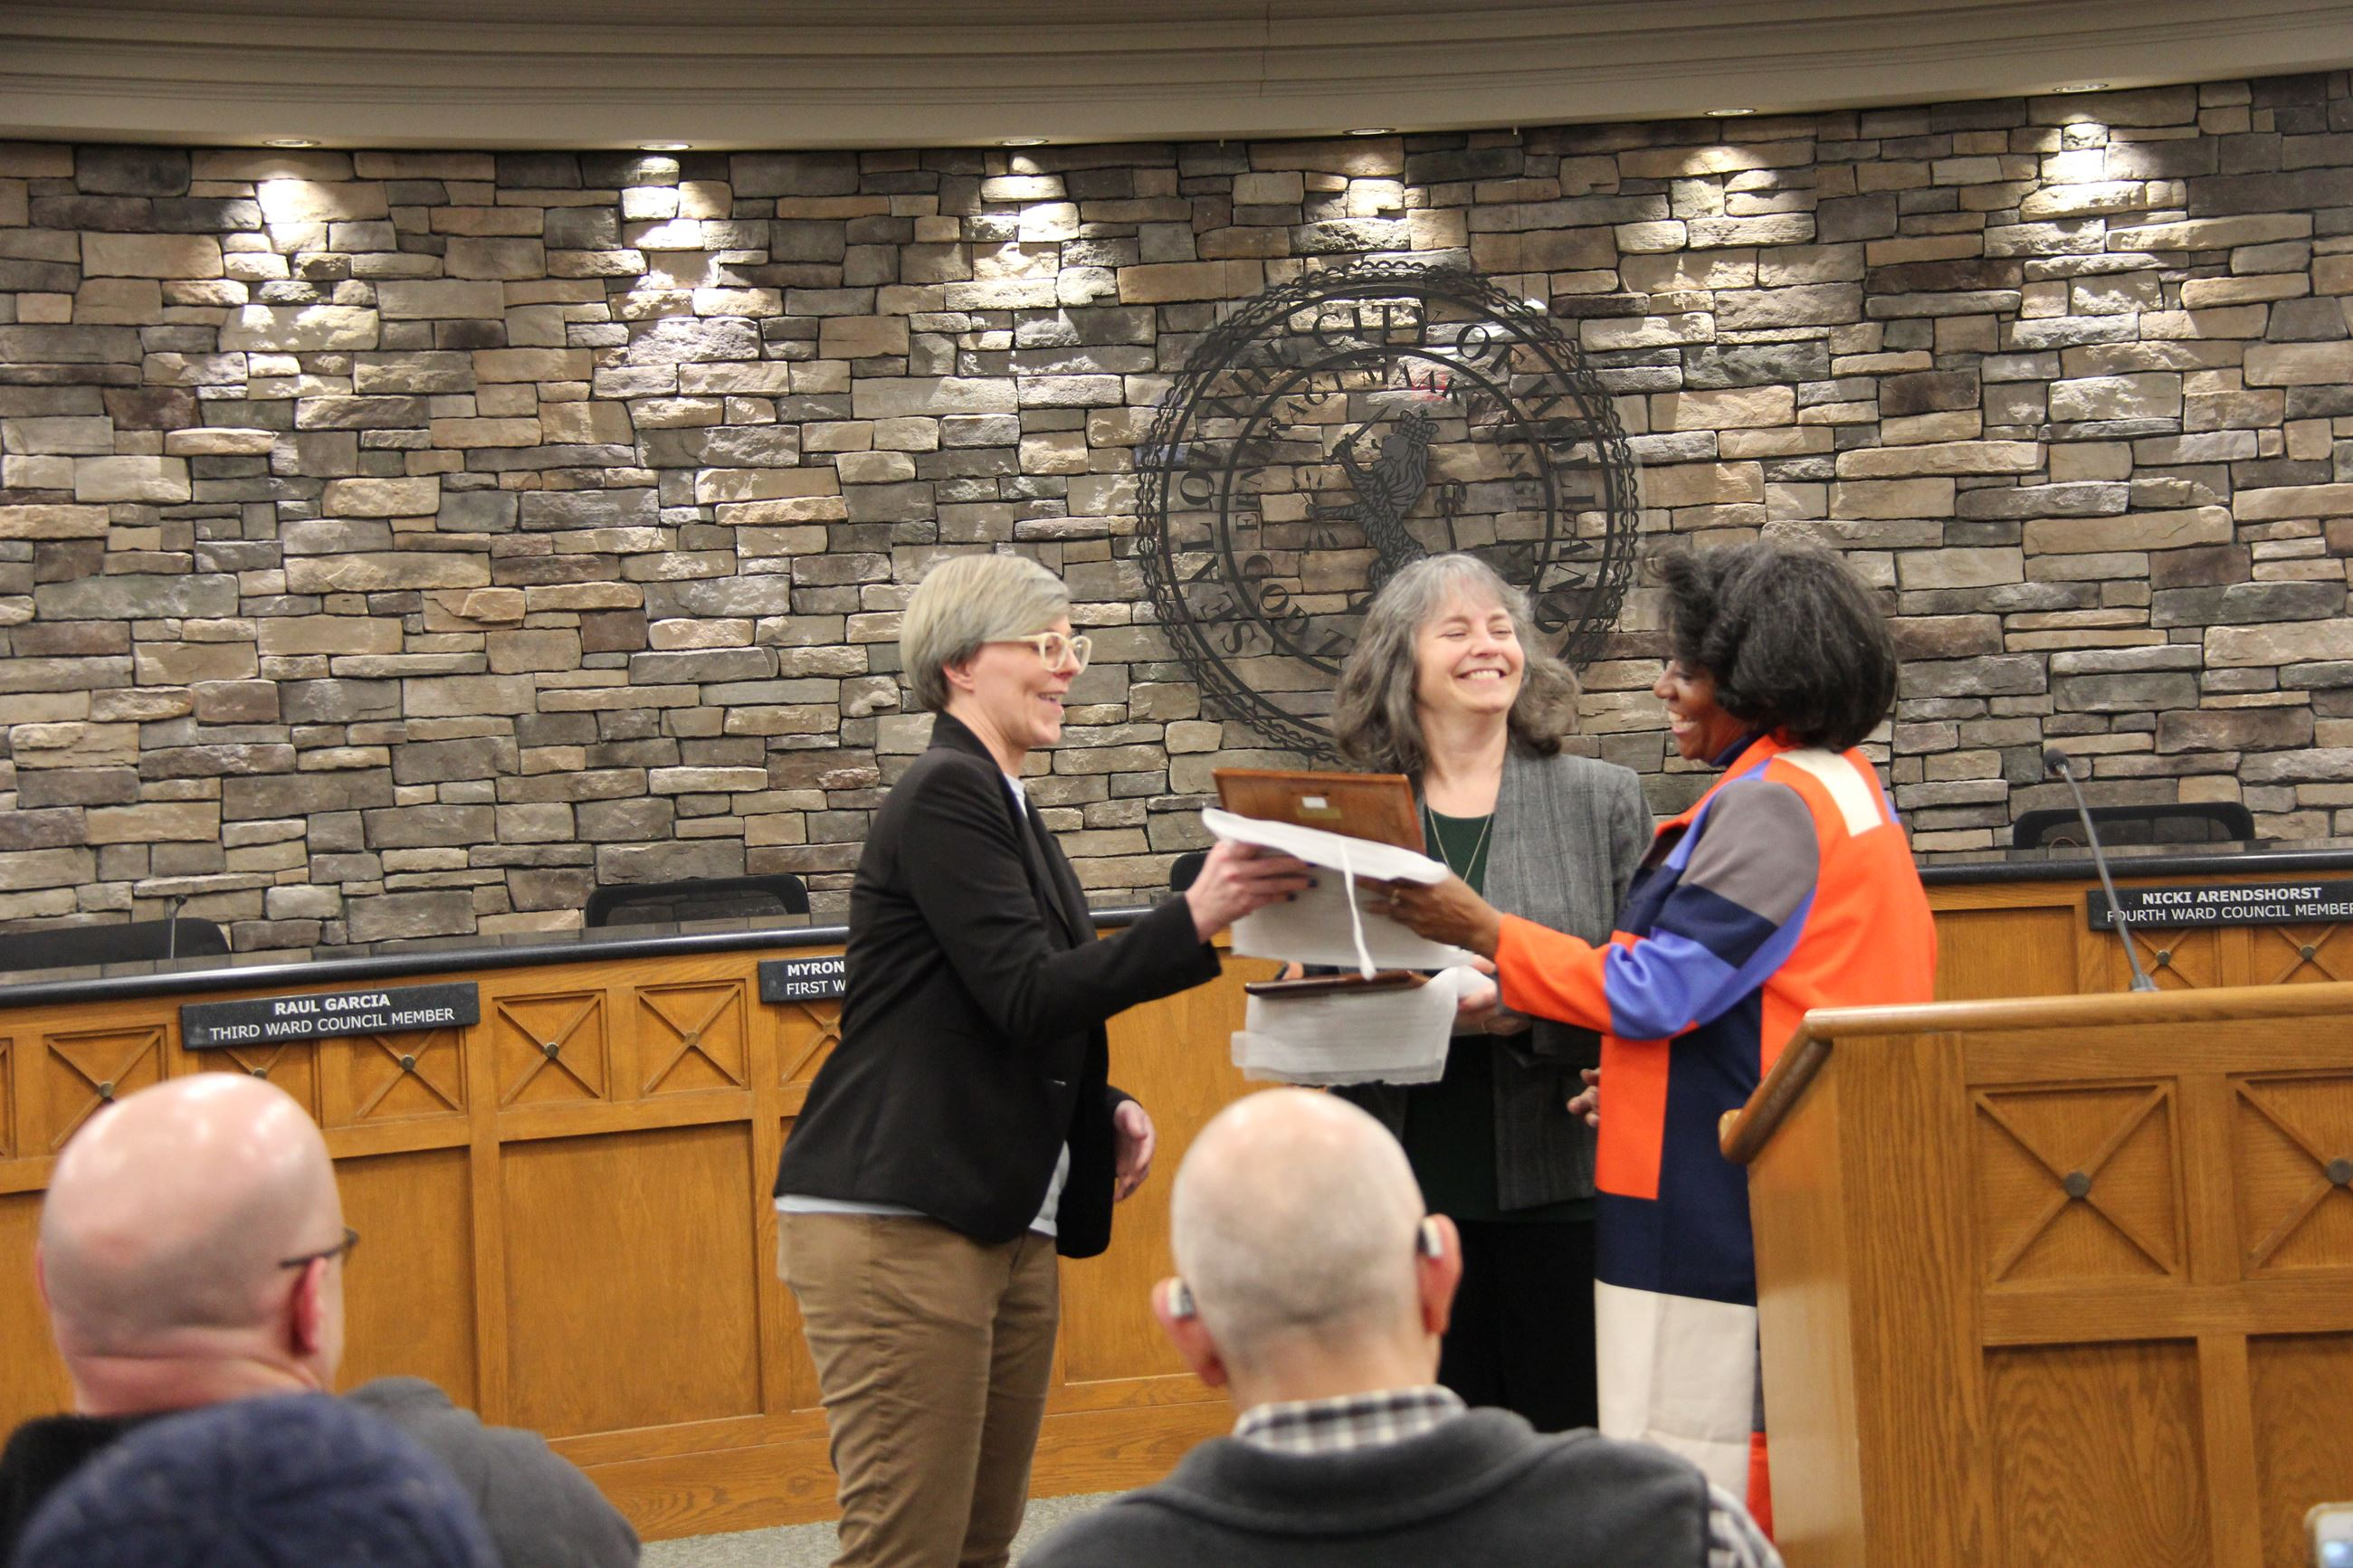 Social Justice Award for Housing presented to Angela Maxwell and First United Methodist Church